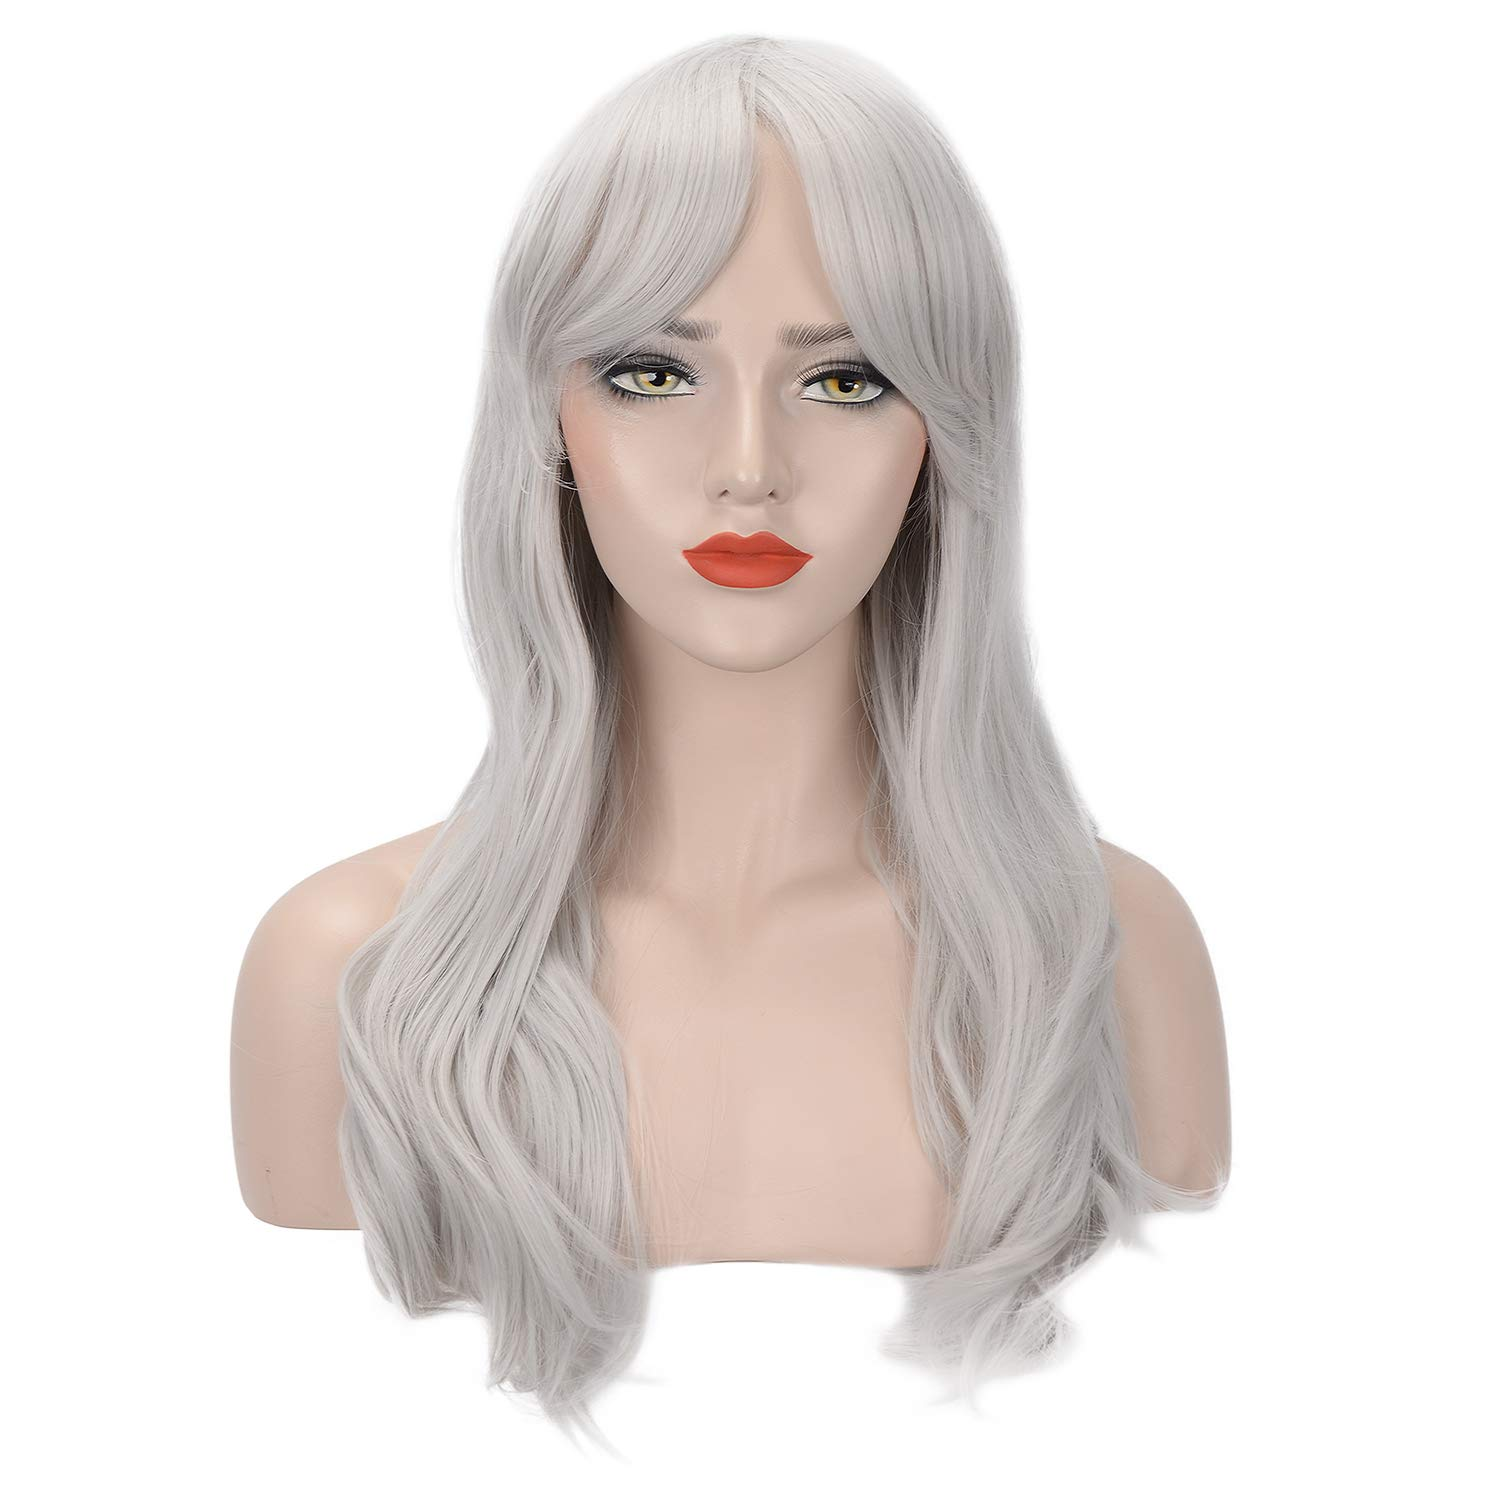 FESHFEN 20 Inch Synthetic Wigs with Bangs Silver Gray Natural Wave Curly Heat Resistant Wig for Women Girl Daily/Party/COSPLAY